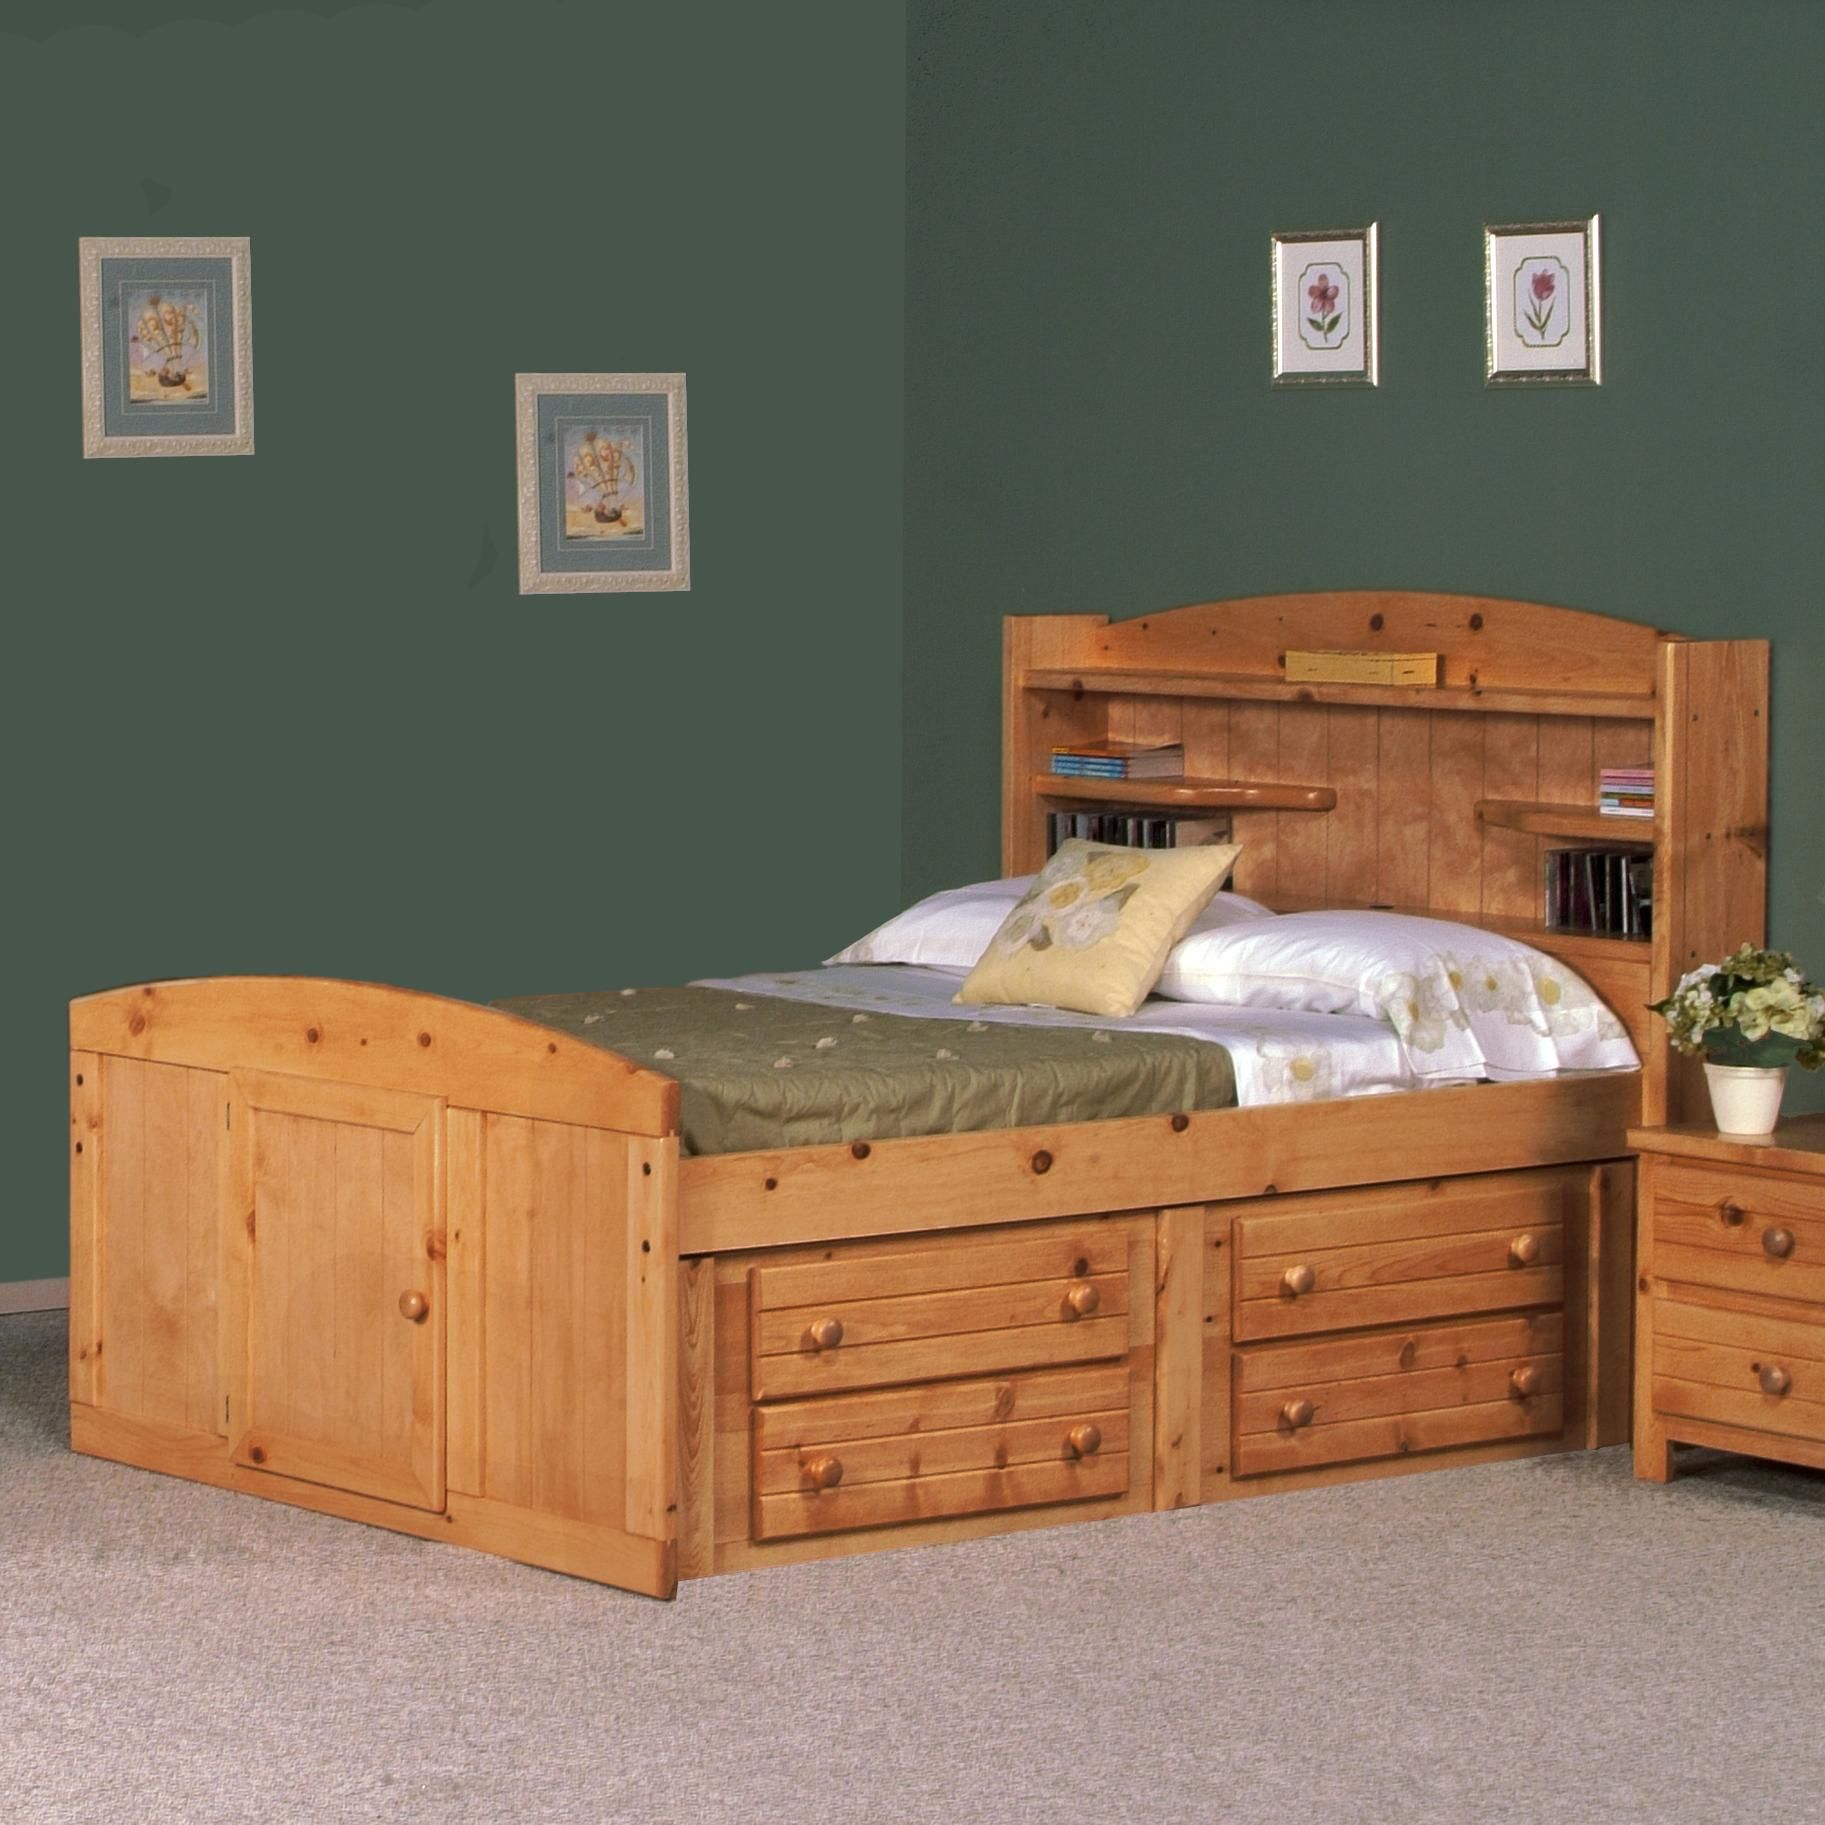 Bayview Full Palomino Bed by Trendwood  Cute Bedroom set for a     Bayview Full Palomino Bed by Trendwood  Cute Bedroom set for a teenage boy